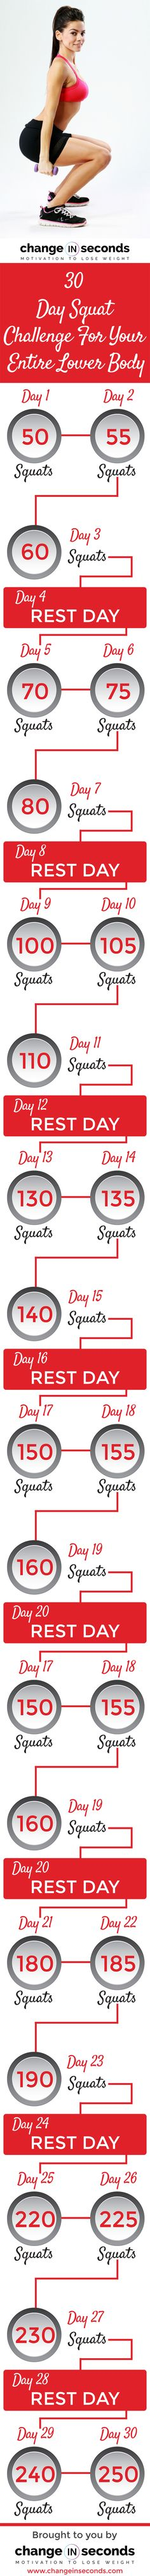 30 Day Squat Challenge https://www.changeinseconds.com/30-day-squat-challenge-for-your-entire-lower-body/